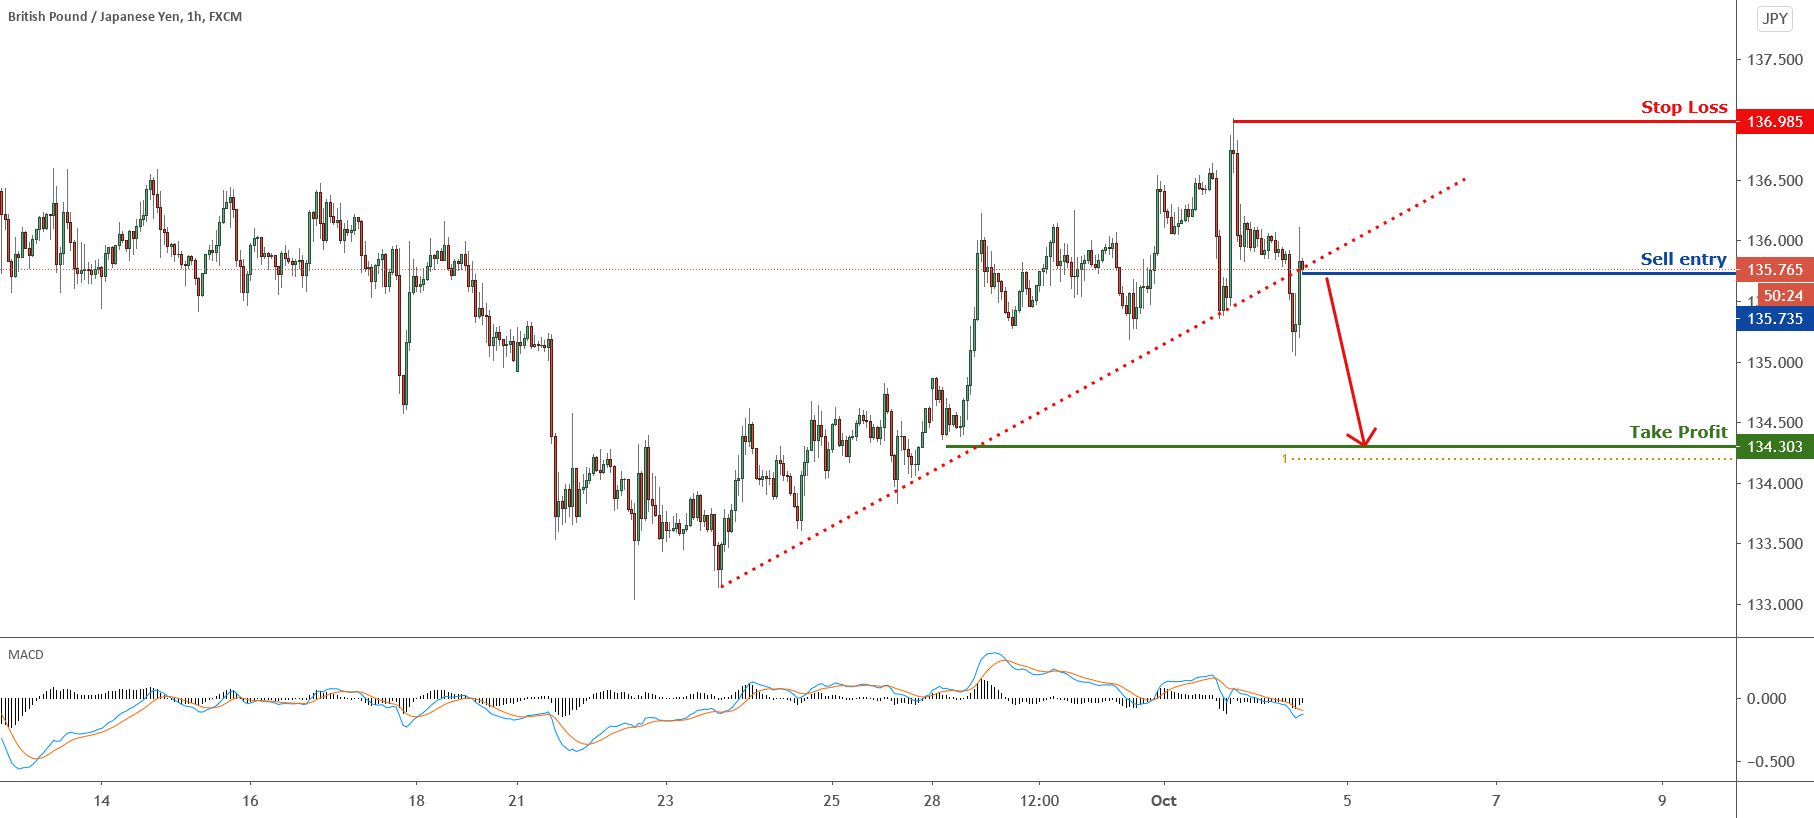 Breakout Identified in GBPJPY for FX:GBPJPY by FXCM